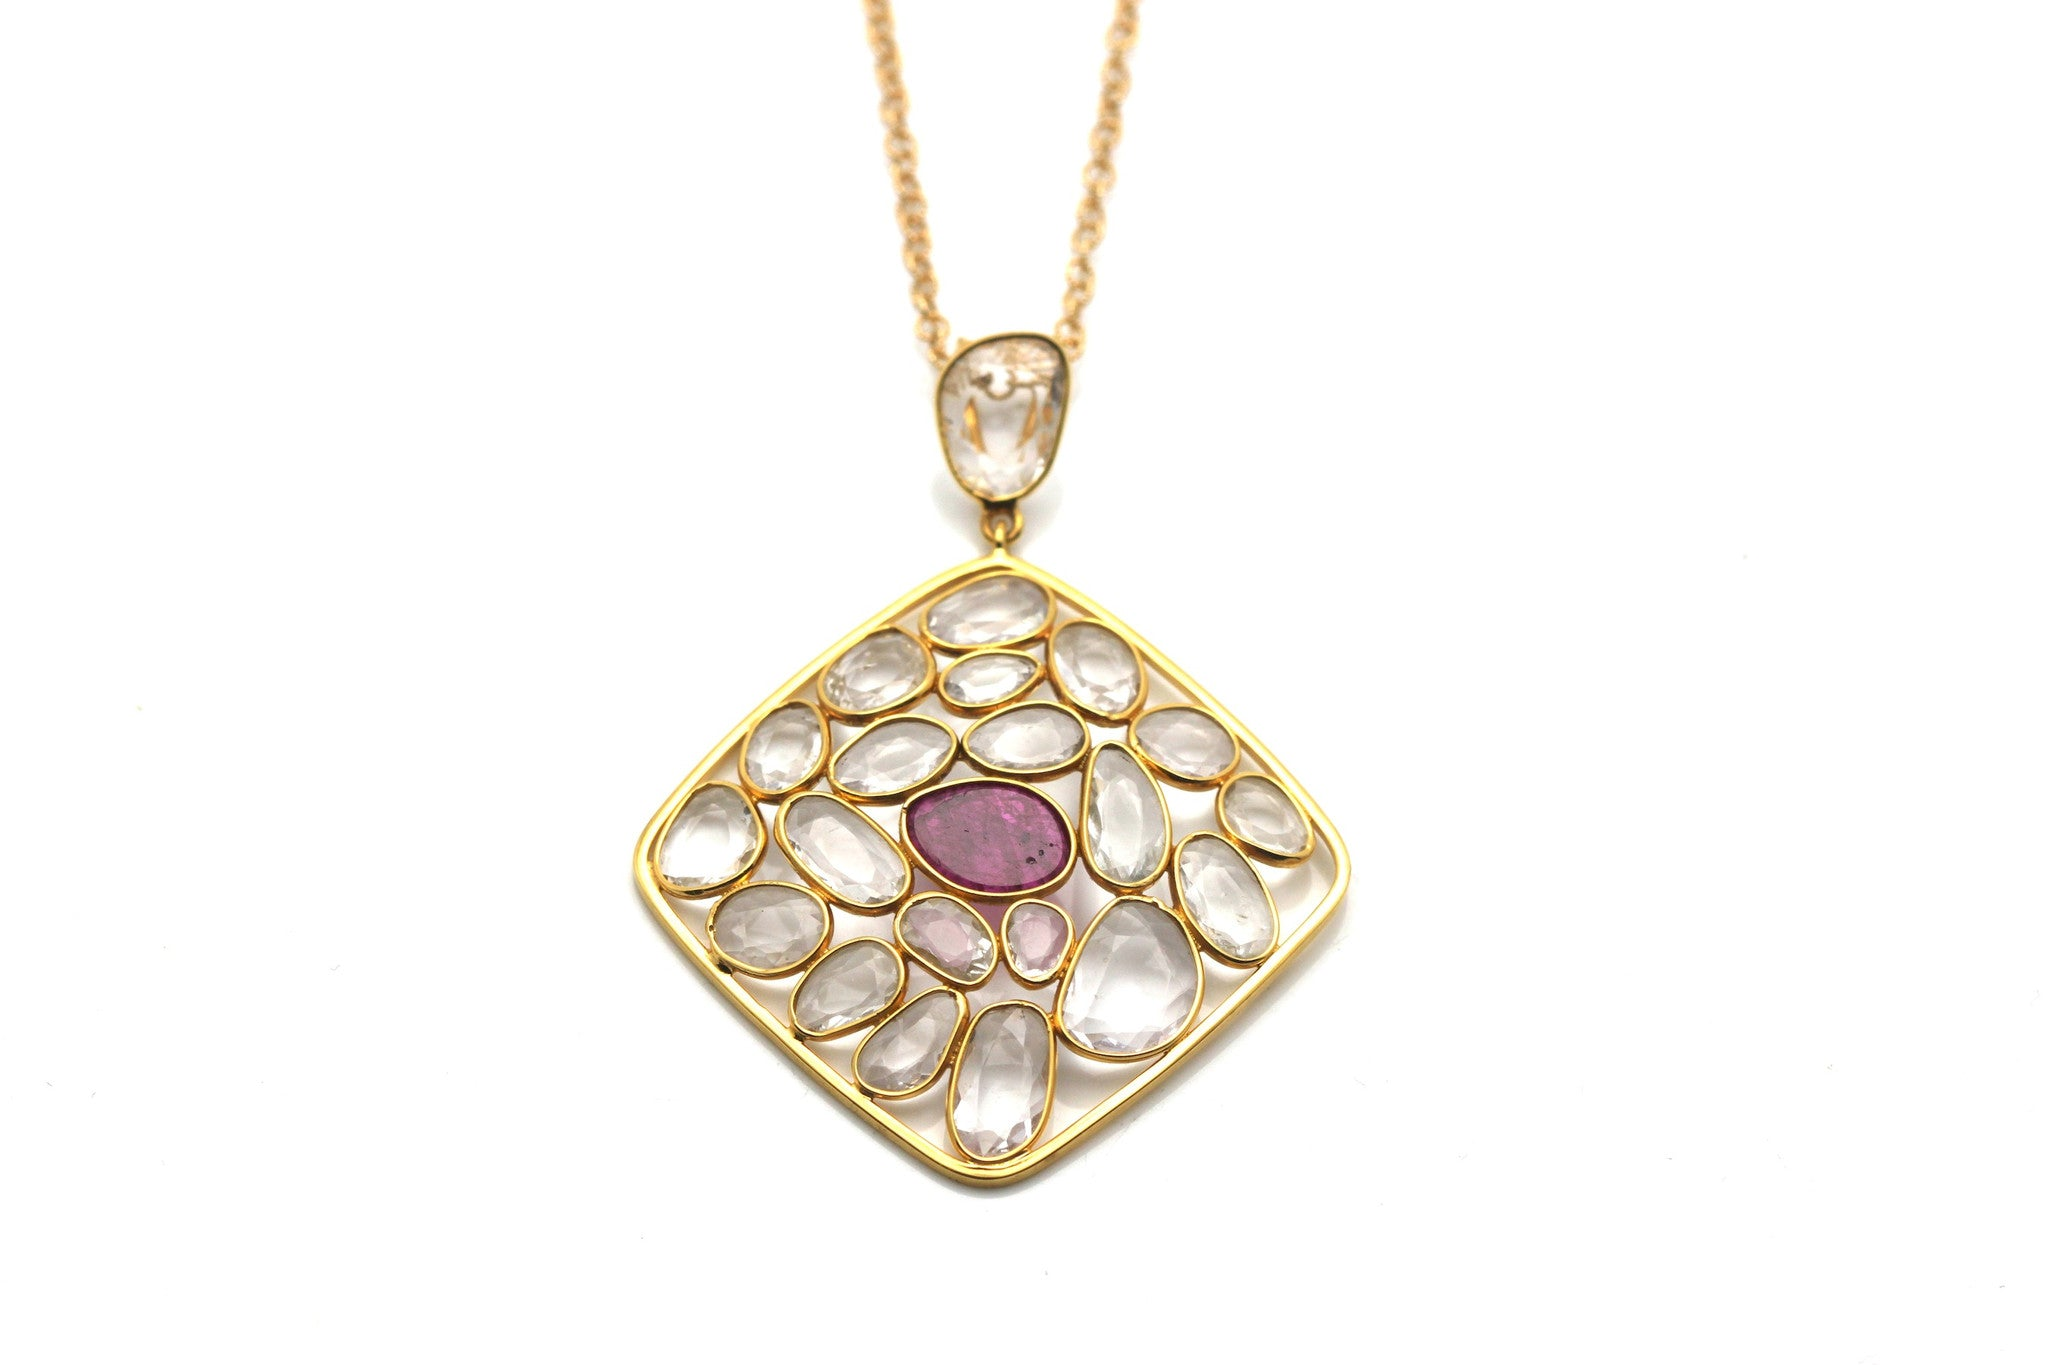 18K Yellow Gold Pendant with White Sapphire and Ruby